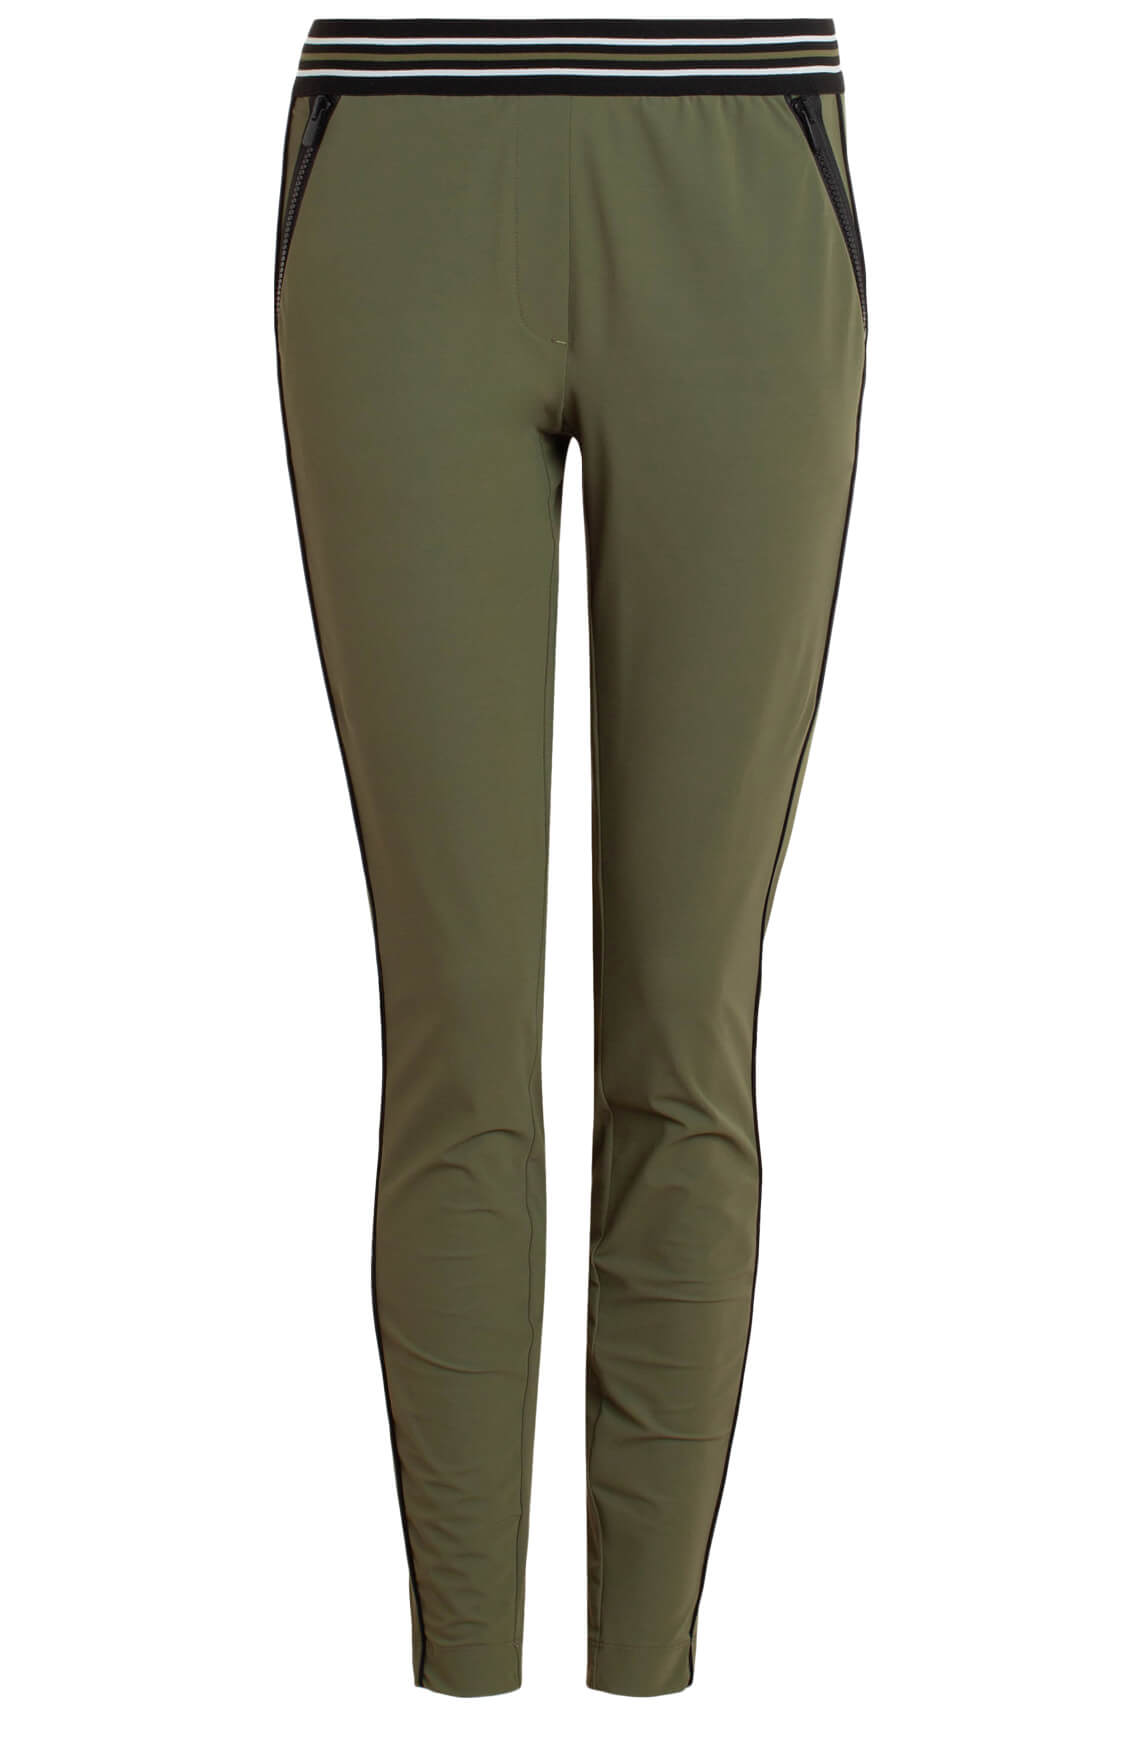 Anna Blue Dames Jersey sensitive pantalon met bies groen